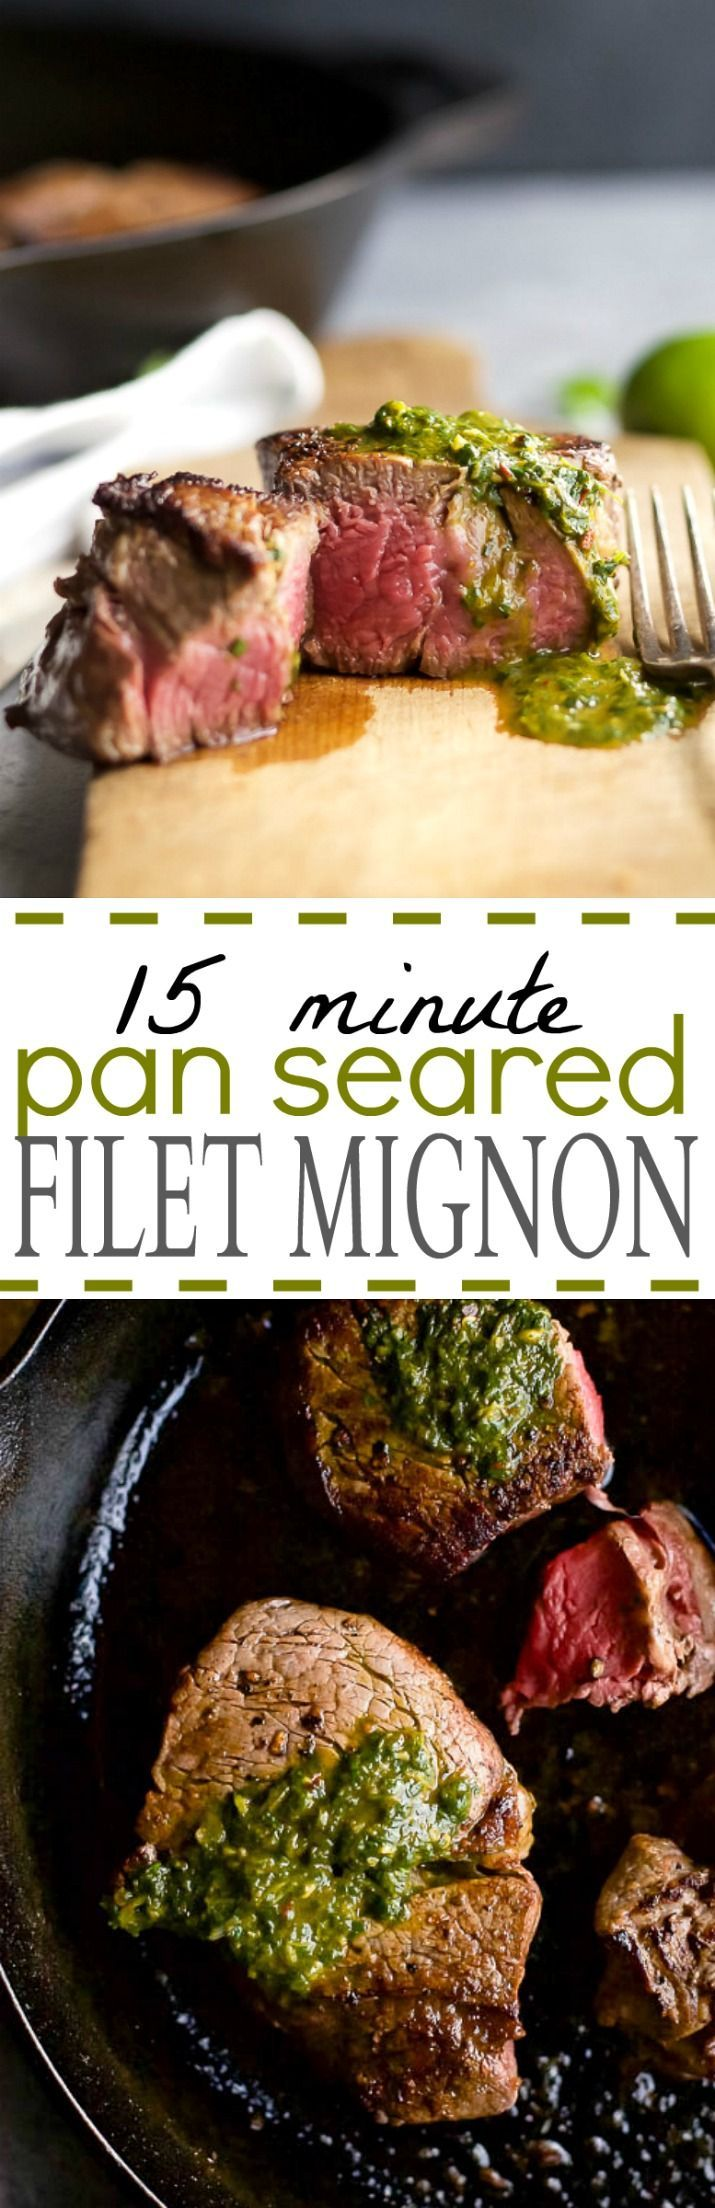 15 MINUTE PAN SEARED FILET MIGNON with a zesty CHIMICHURRI - the ultimate date night recipe. An easy recipe to make that delivers on flavor in a big way!   joyfulhealthyeats.com   gluten free recipes